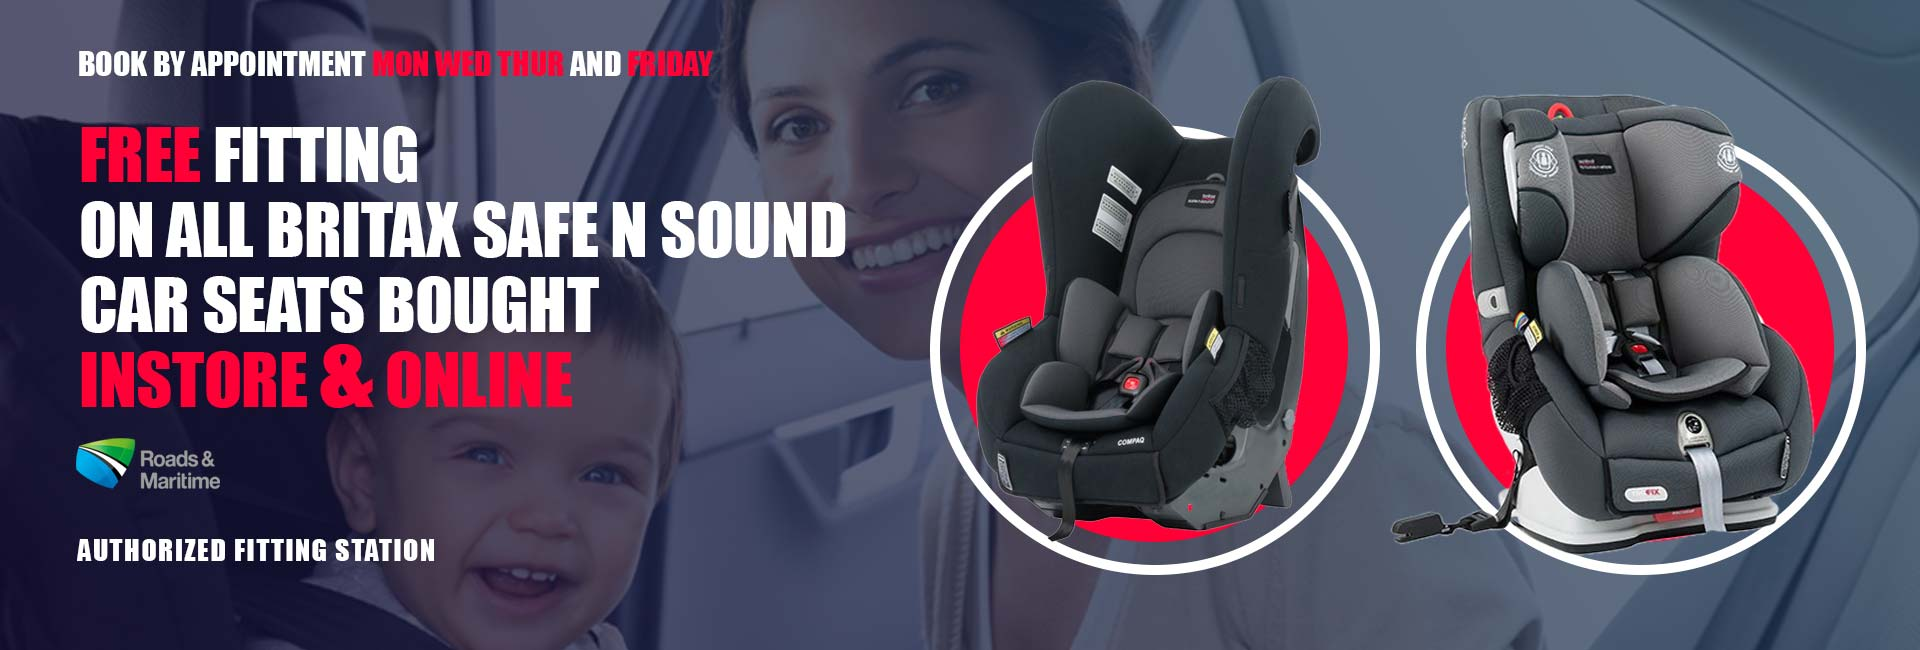 Car Seat Fitting